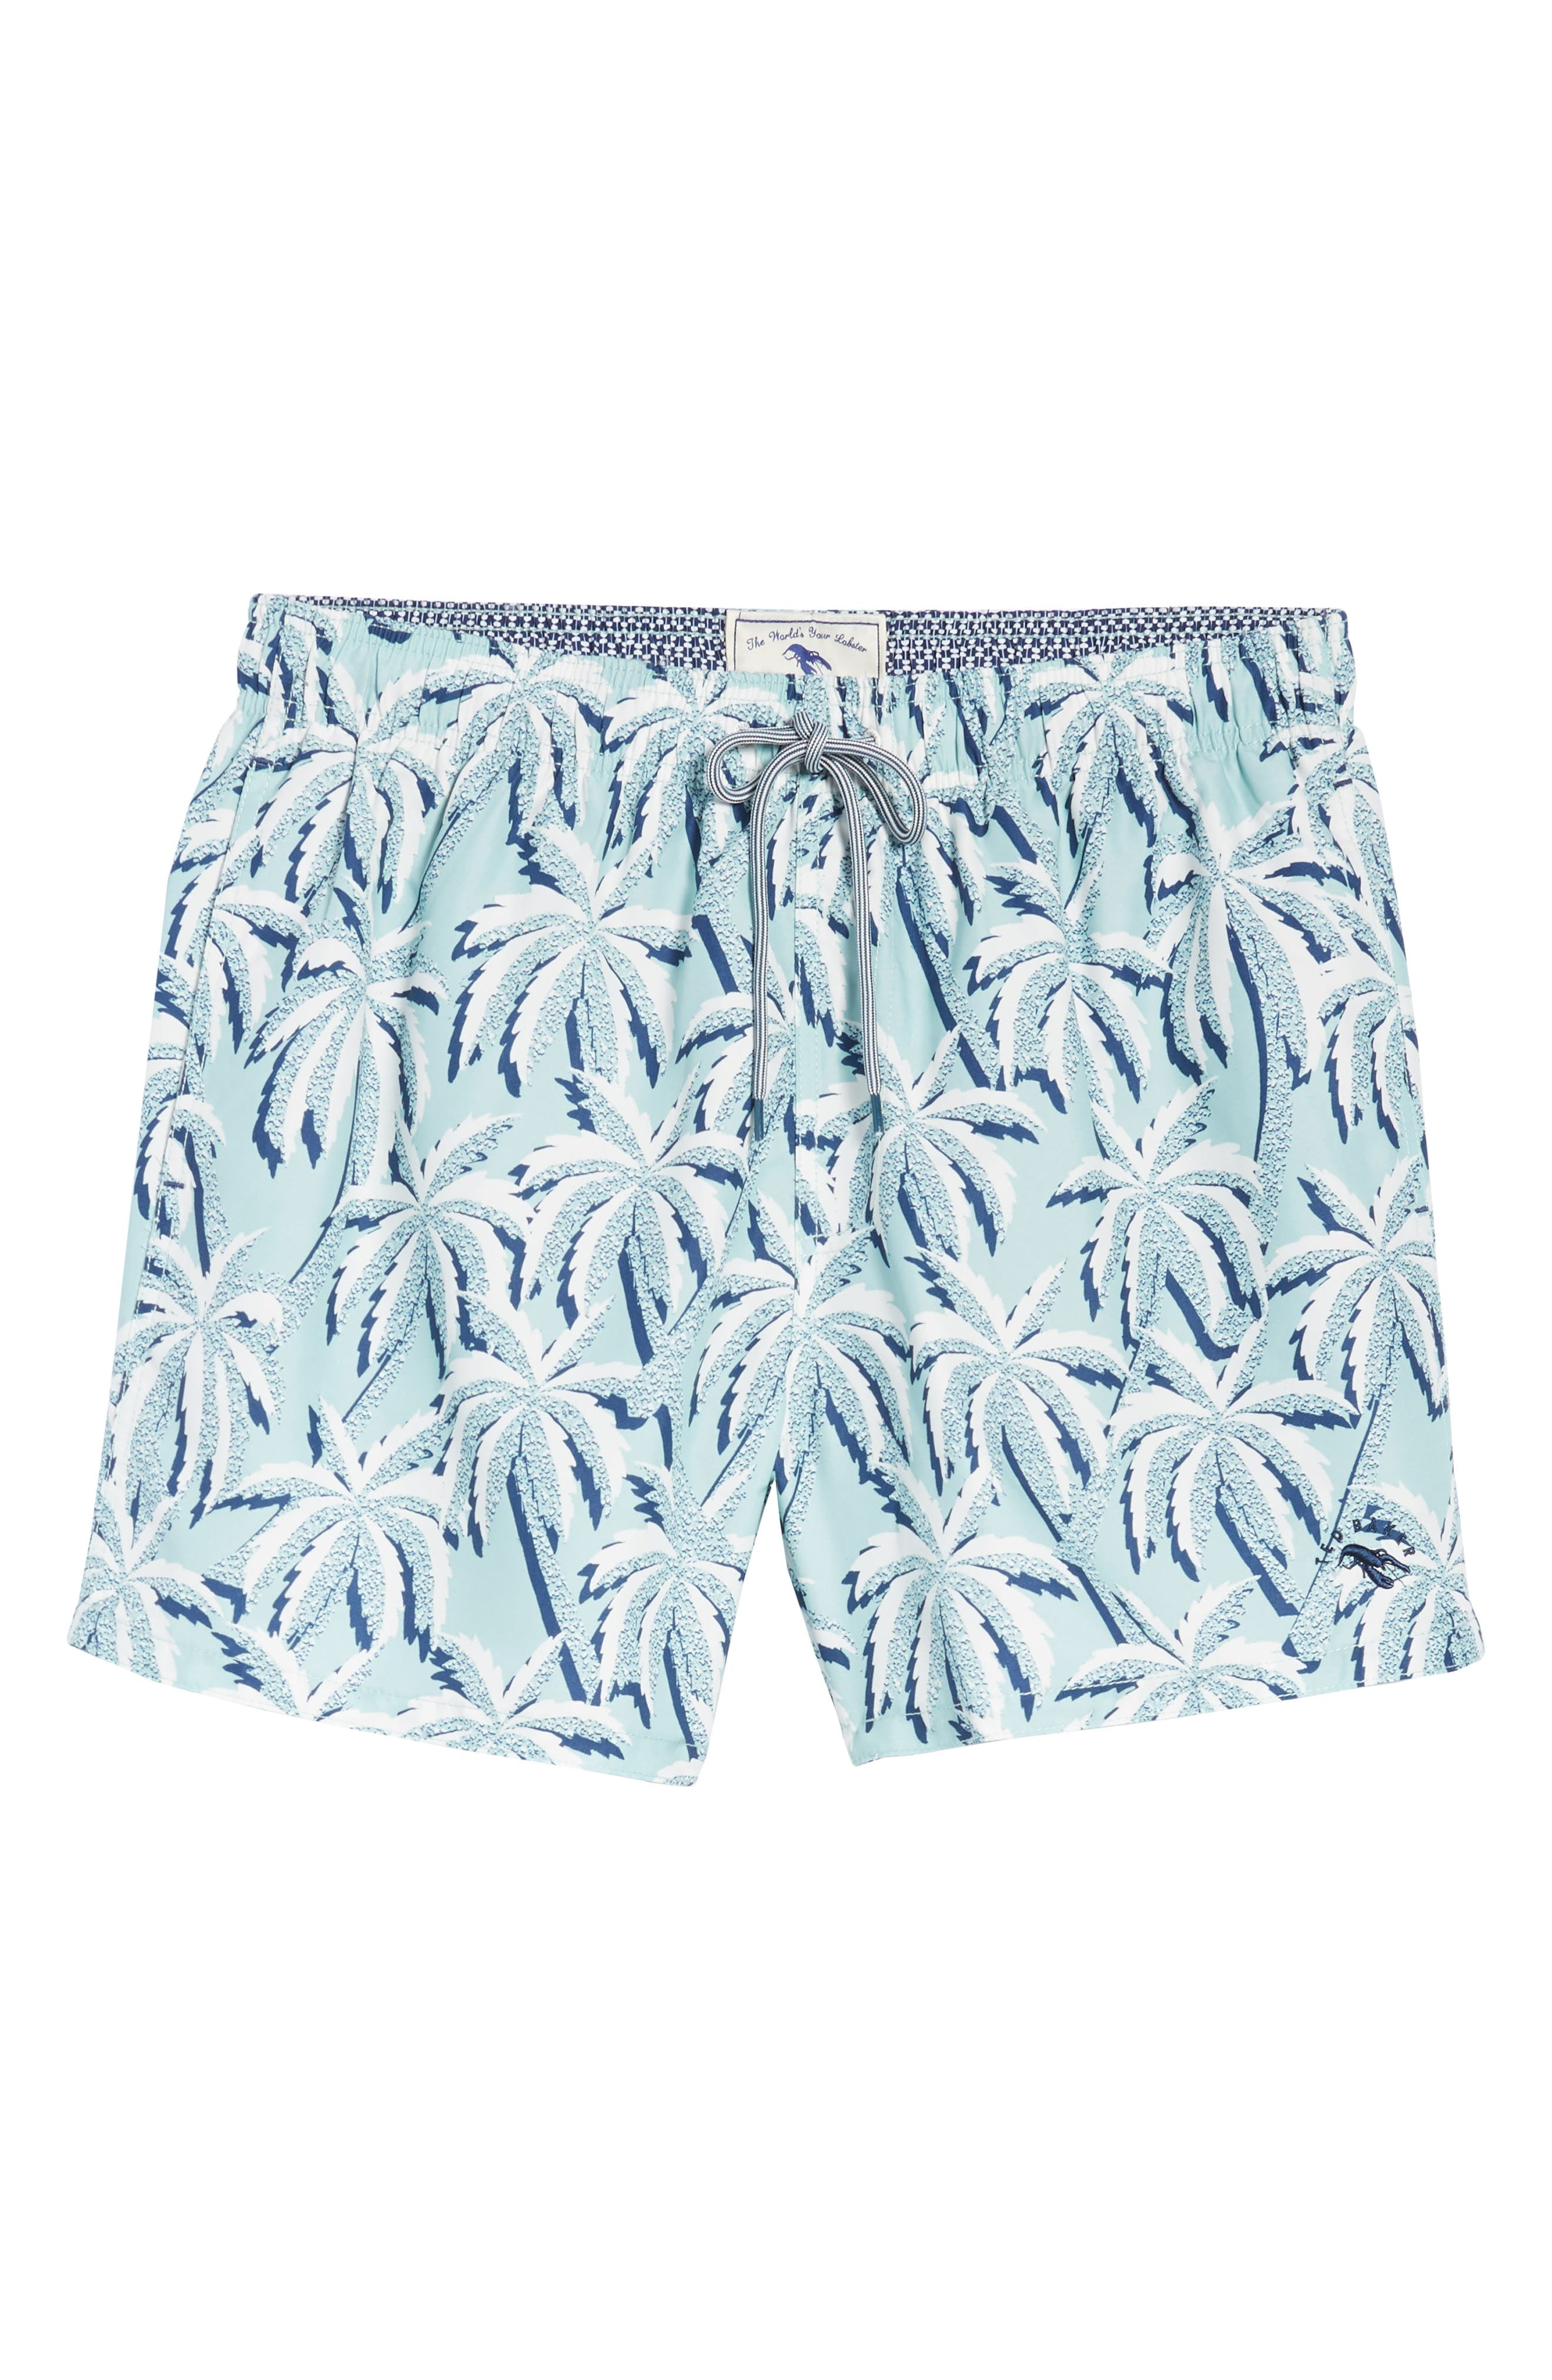 Hoppah Palm Print Swim Shorts,                             Alternate thumbnail 6, color,                             330